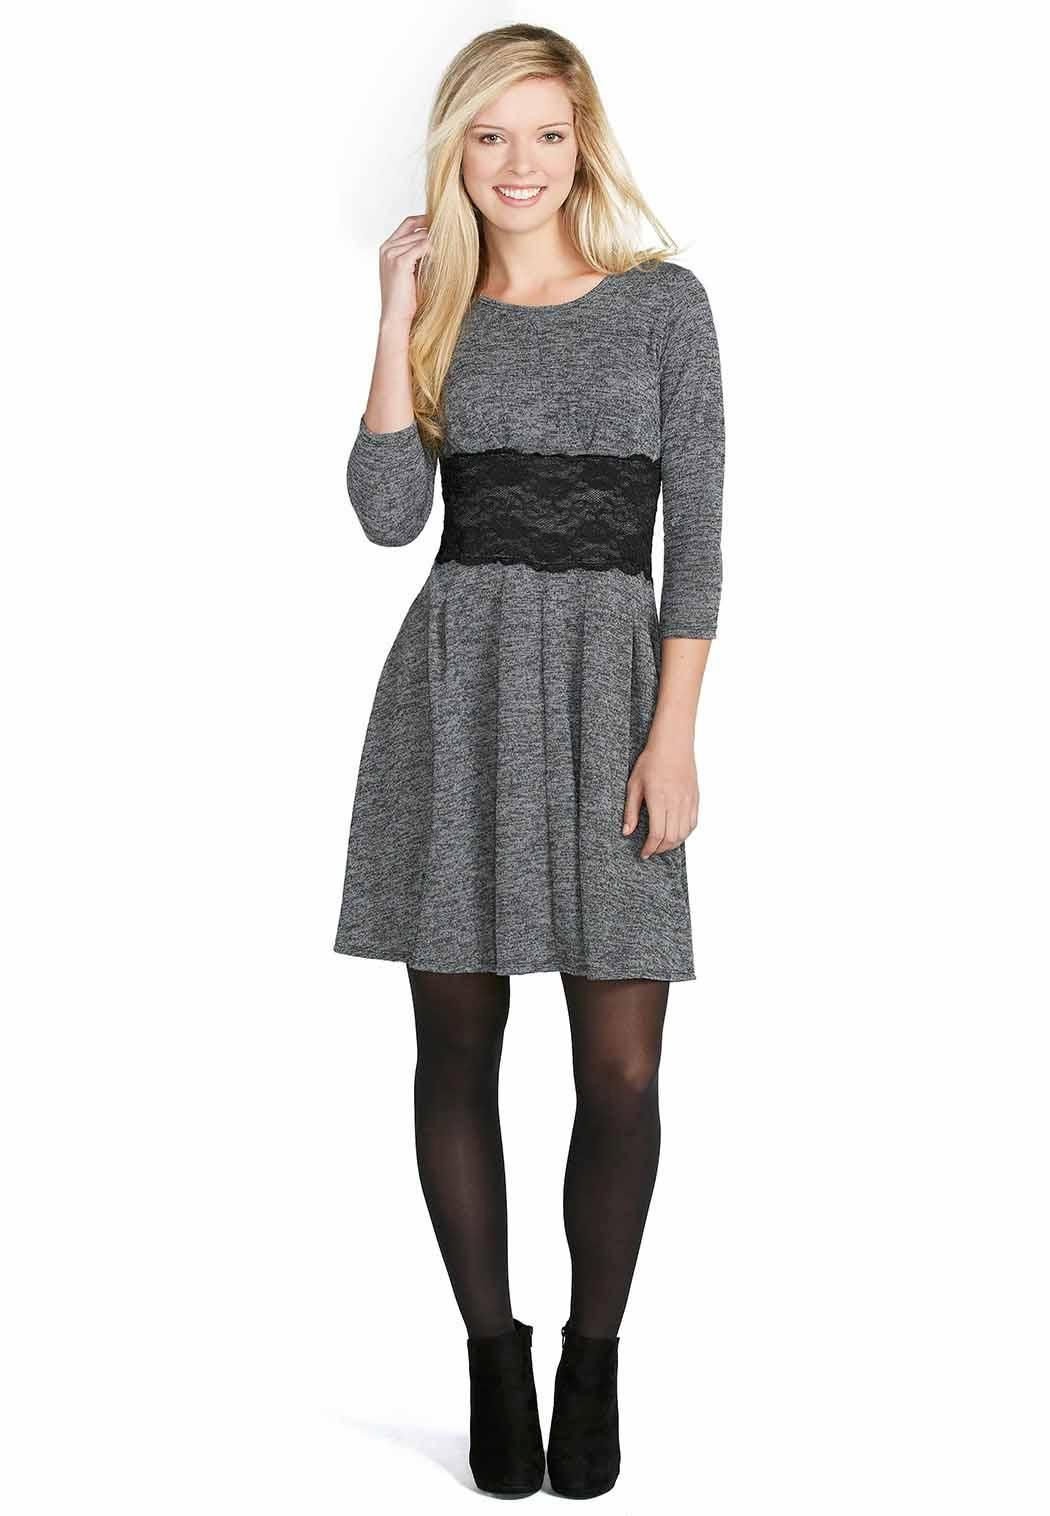 67d3c63dd681 $30 Lace Panel Sweater Dress Dresses Cato Fashions | My Style ...